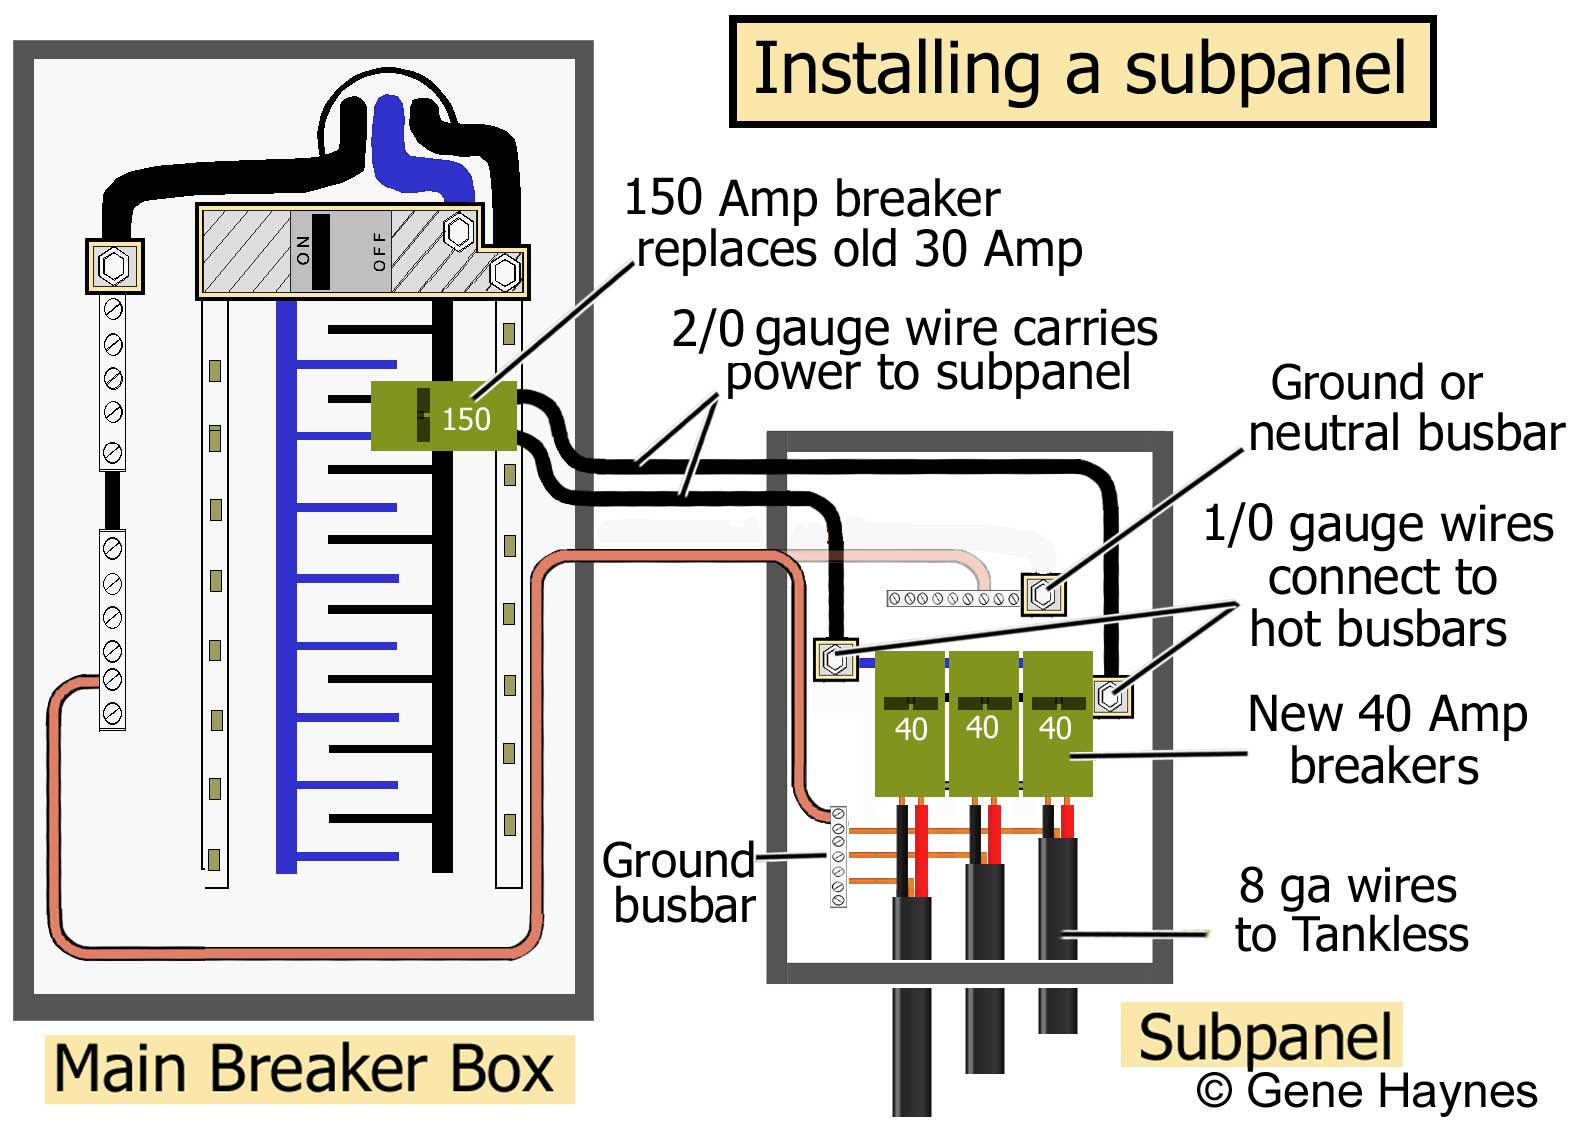 How to wire tankless electric water heater larger image of 240 volt subpanel greentooth Gallery